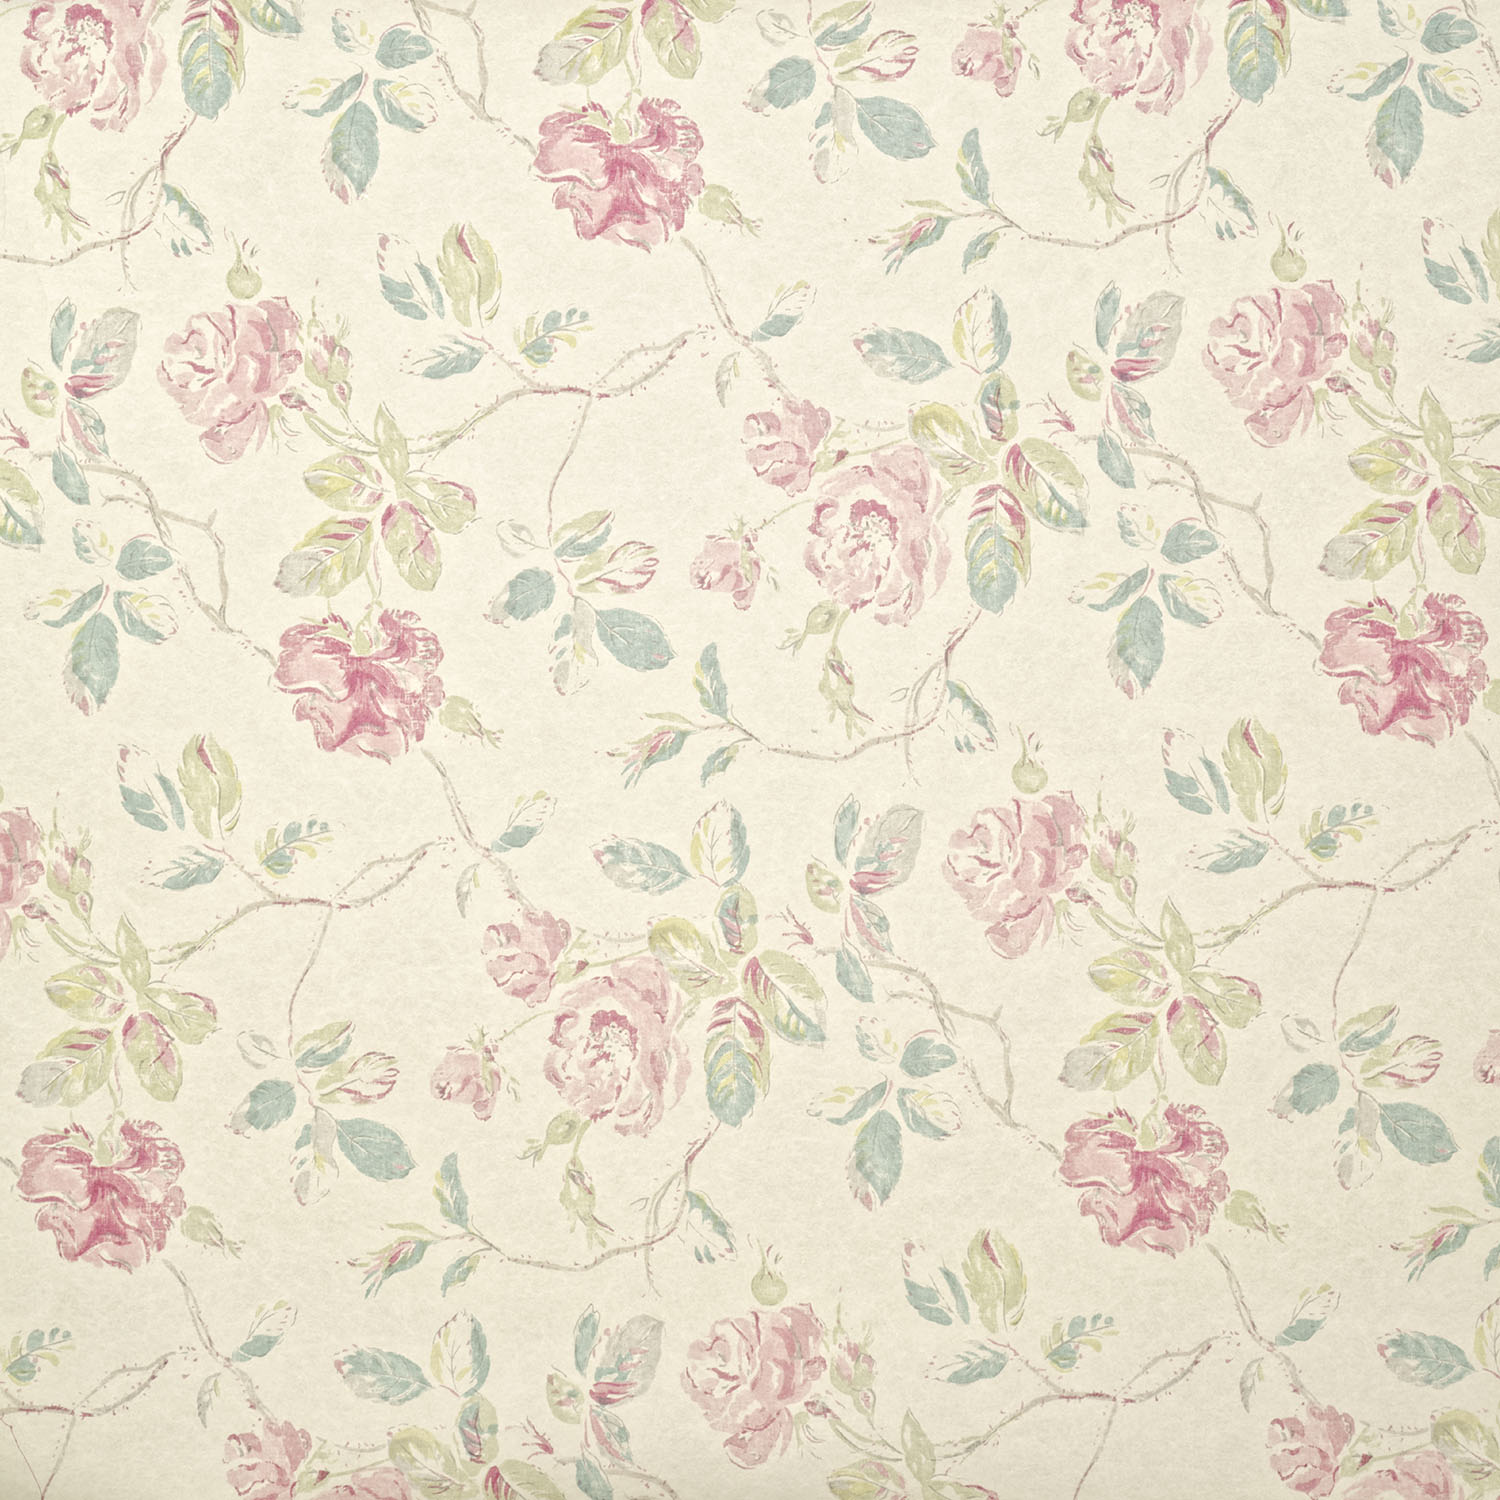 <p><strong>MARLOW</strong>turquoise/pink/cream 980-03<a href=/collection-3/marlow-turquoise-pink-cream-980-03>More →</a></p>